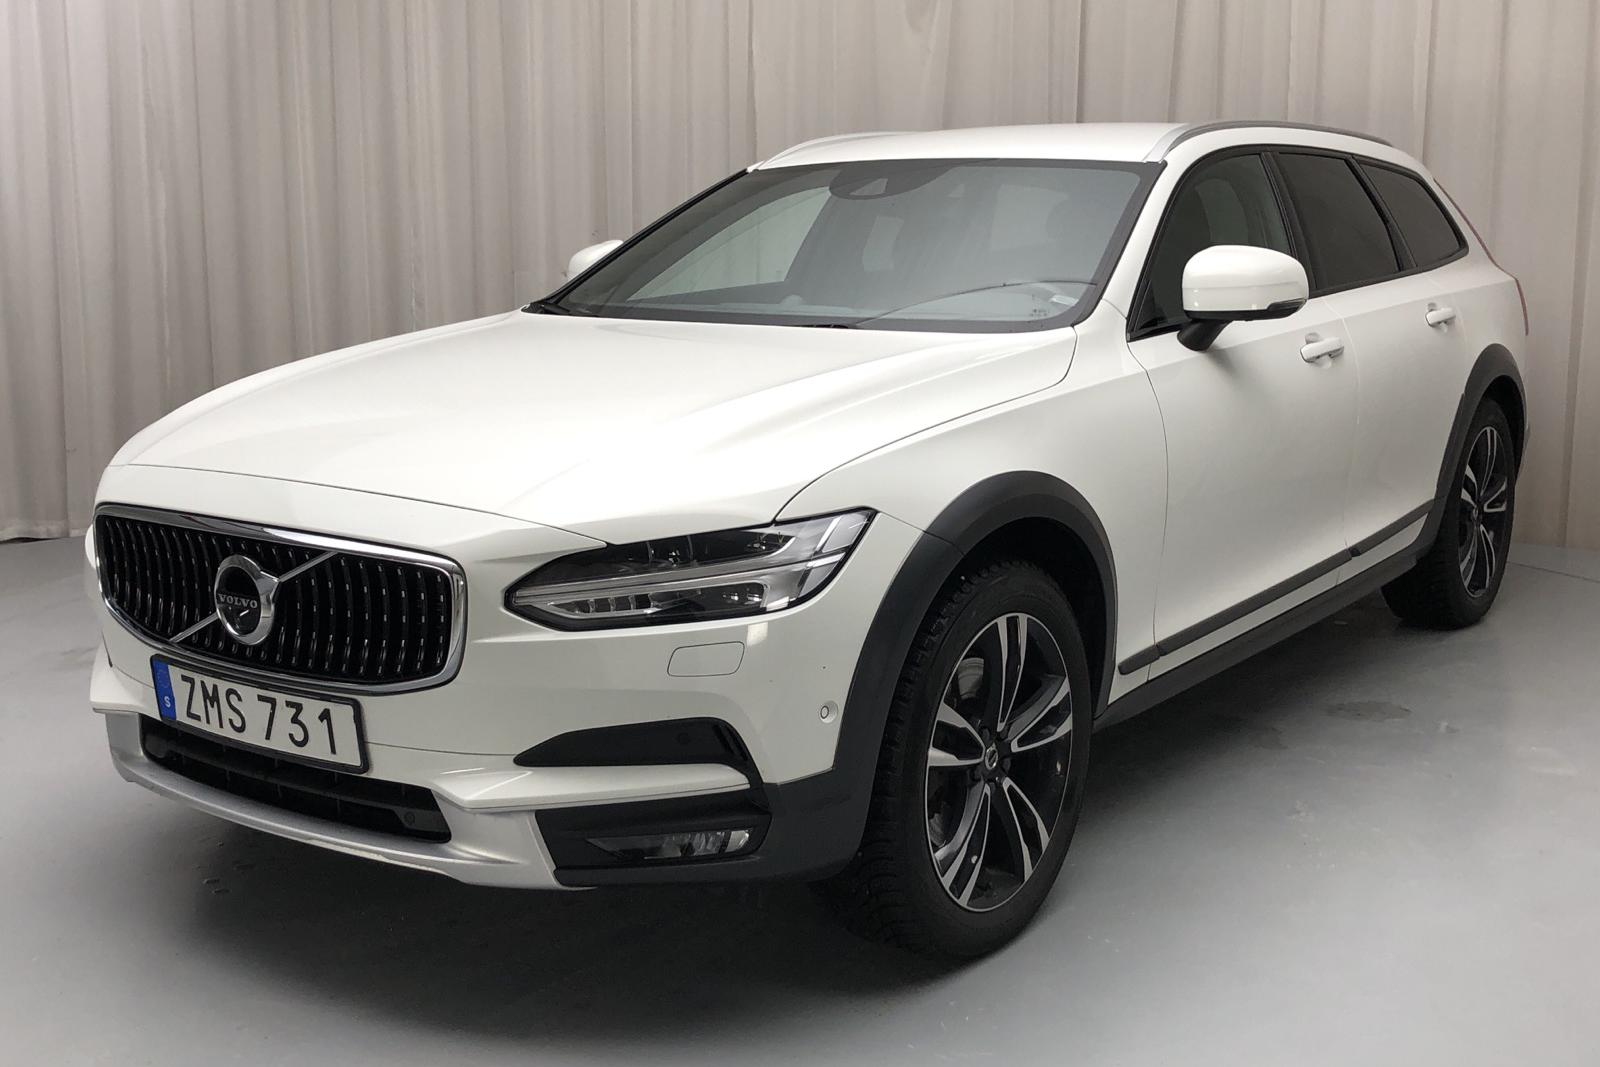 Volvo V90 D5 Cross Country AWD (235hk) - 110 540 km - Automatic - white - 2018